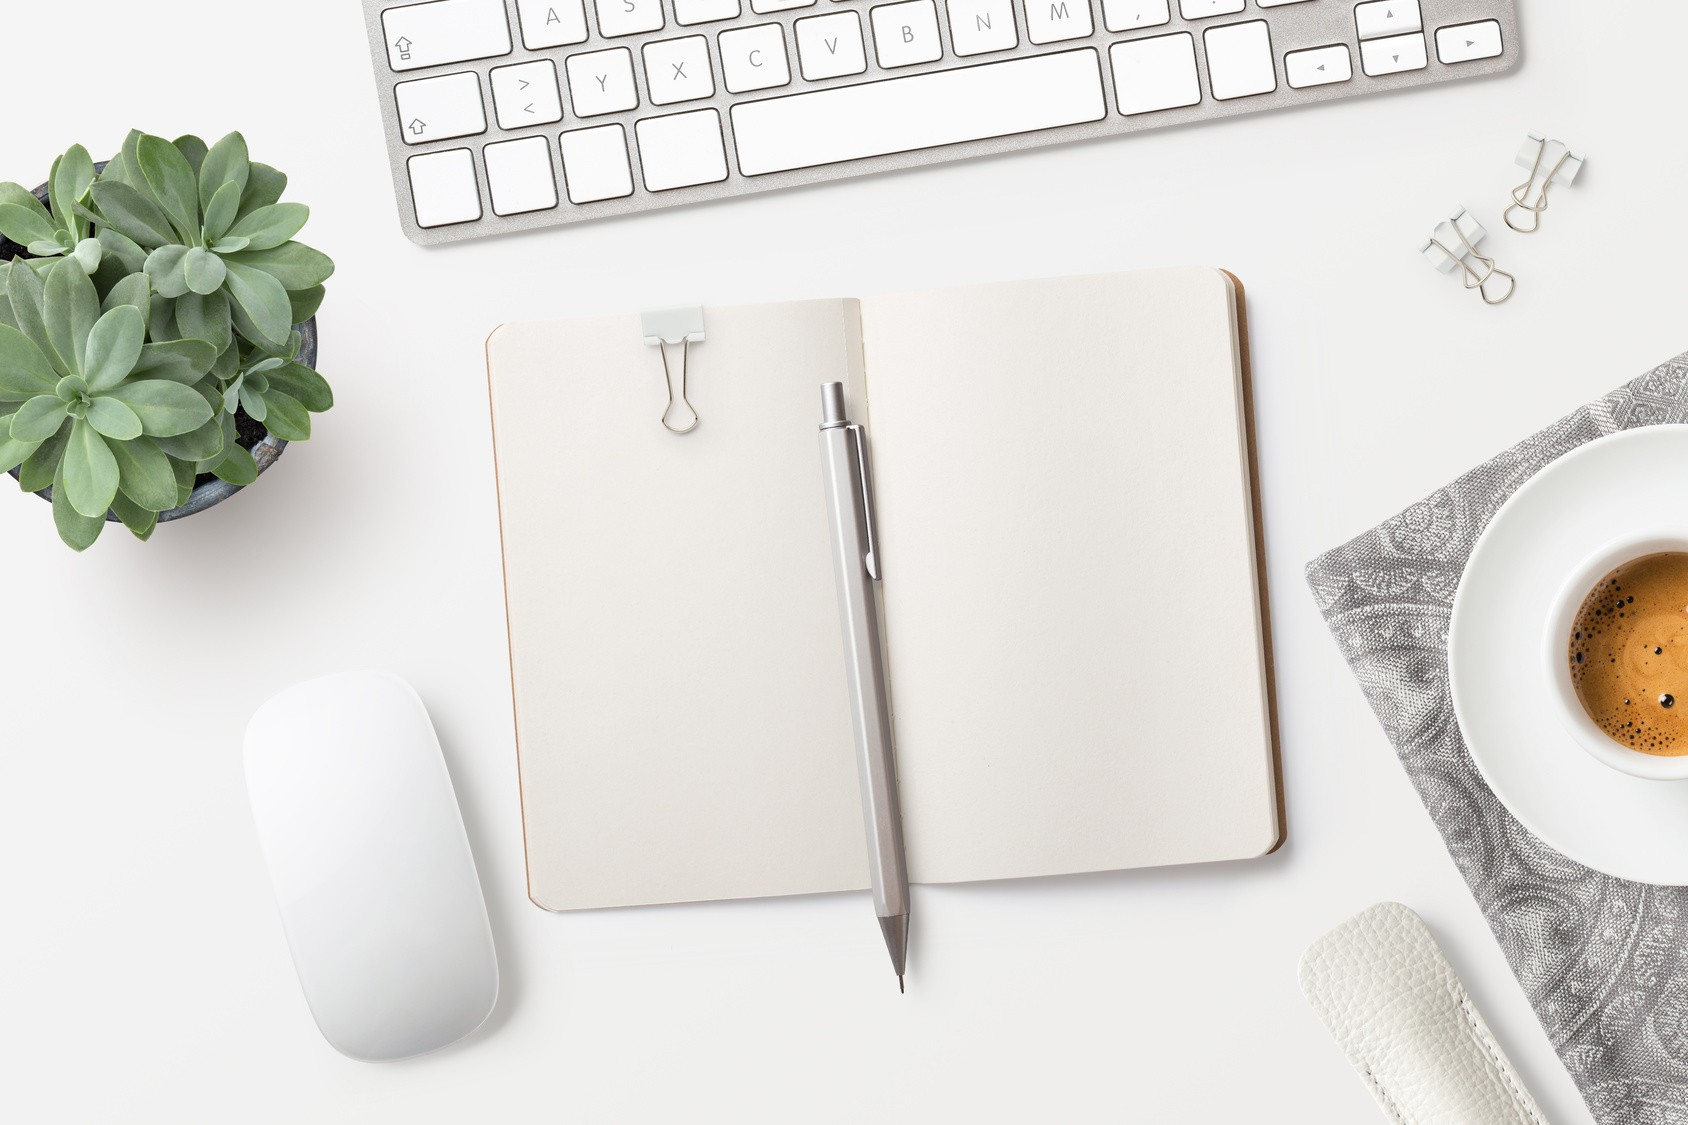 Desktop with blank open notebook, coffee, office supplies and succulents on a white table